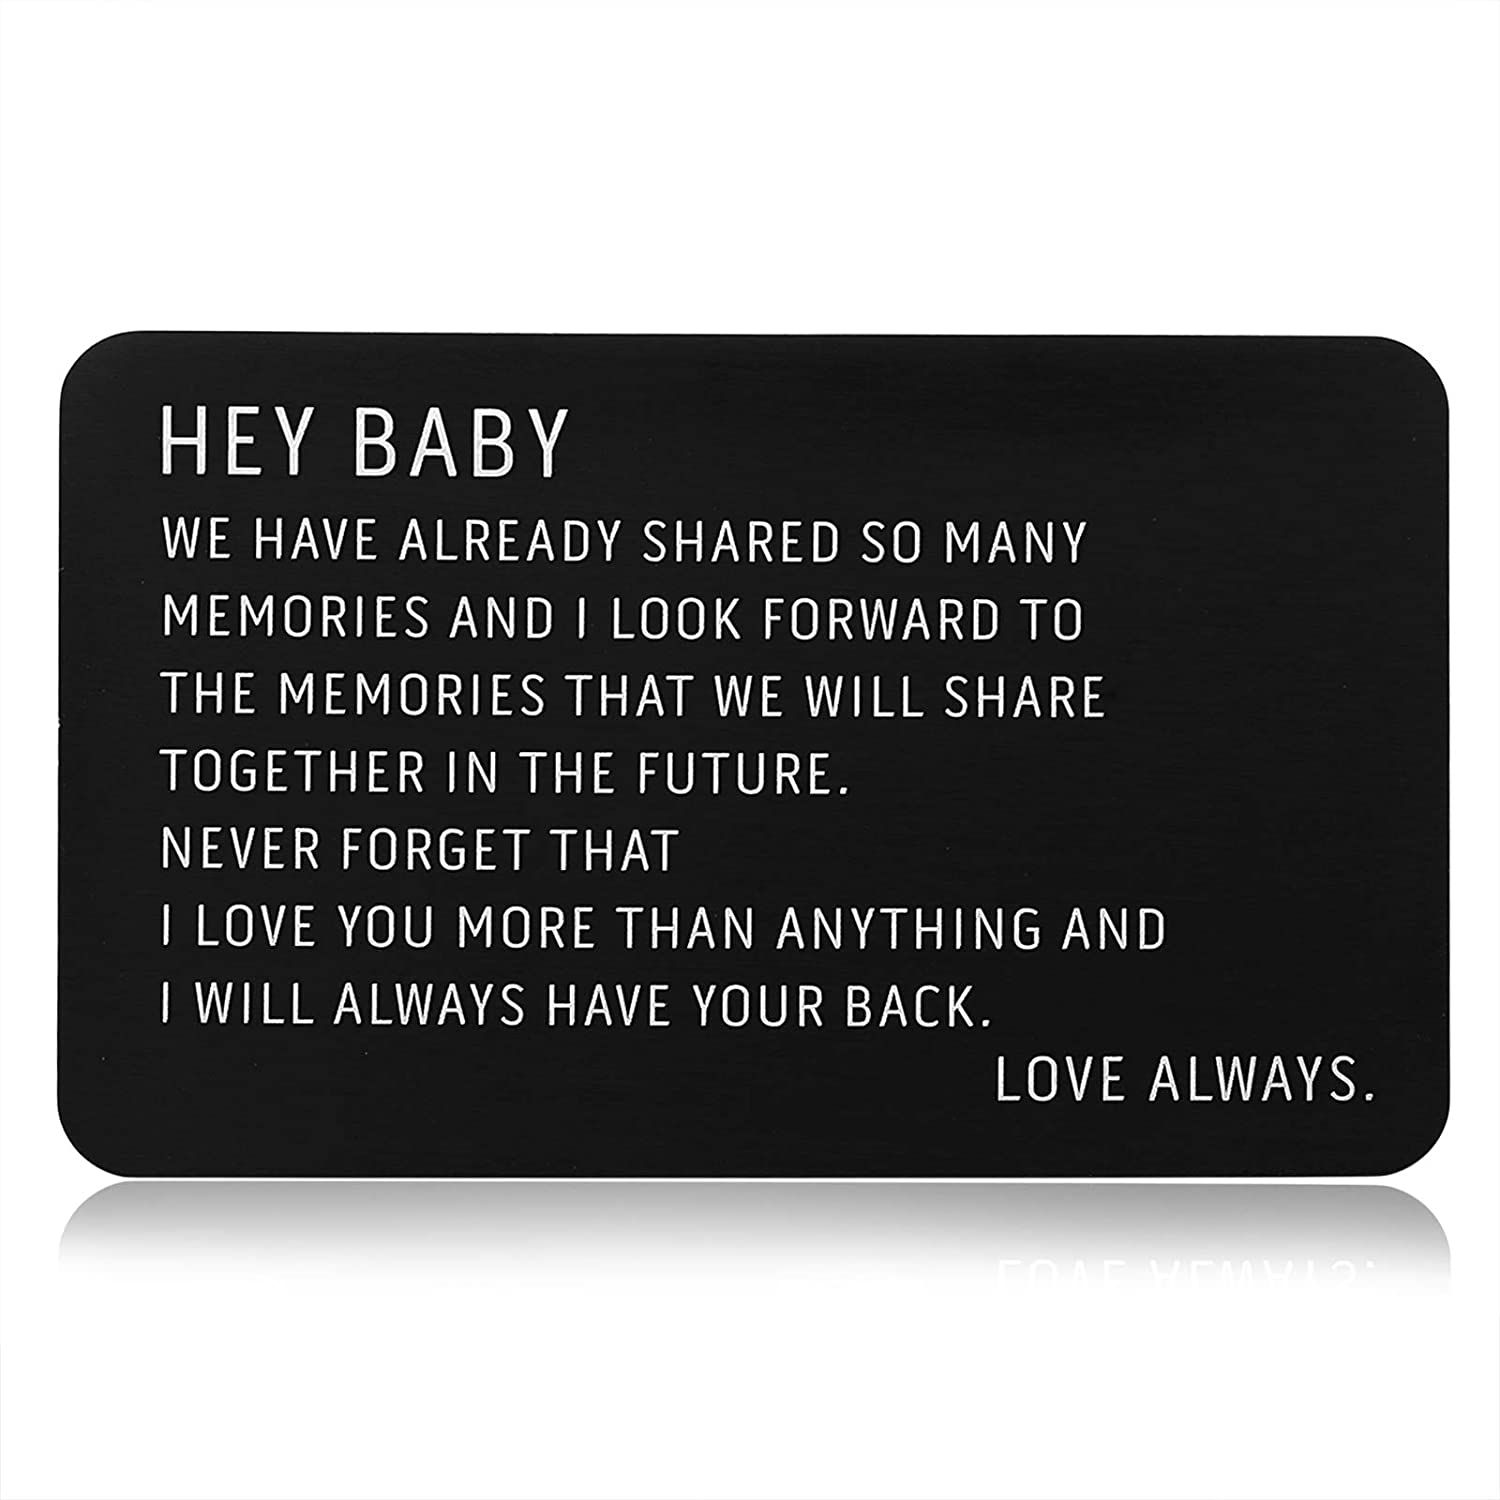 Engraved Metal Wallet Insert Card Black Anniversary Card Gifts for Him Boyfriend Husband Gifts Wife Girlfriend Men Valentines Christmas Birthday Deployment Wedding Gifts Fiance I Love You Note Cool